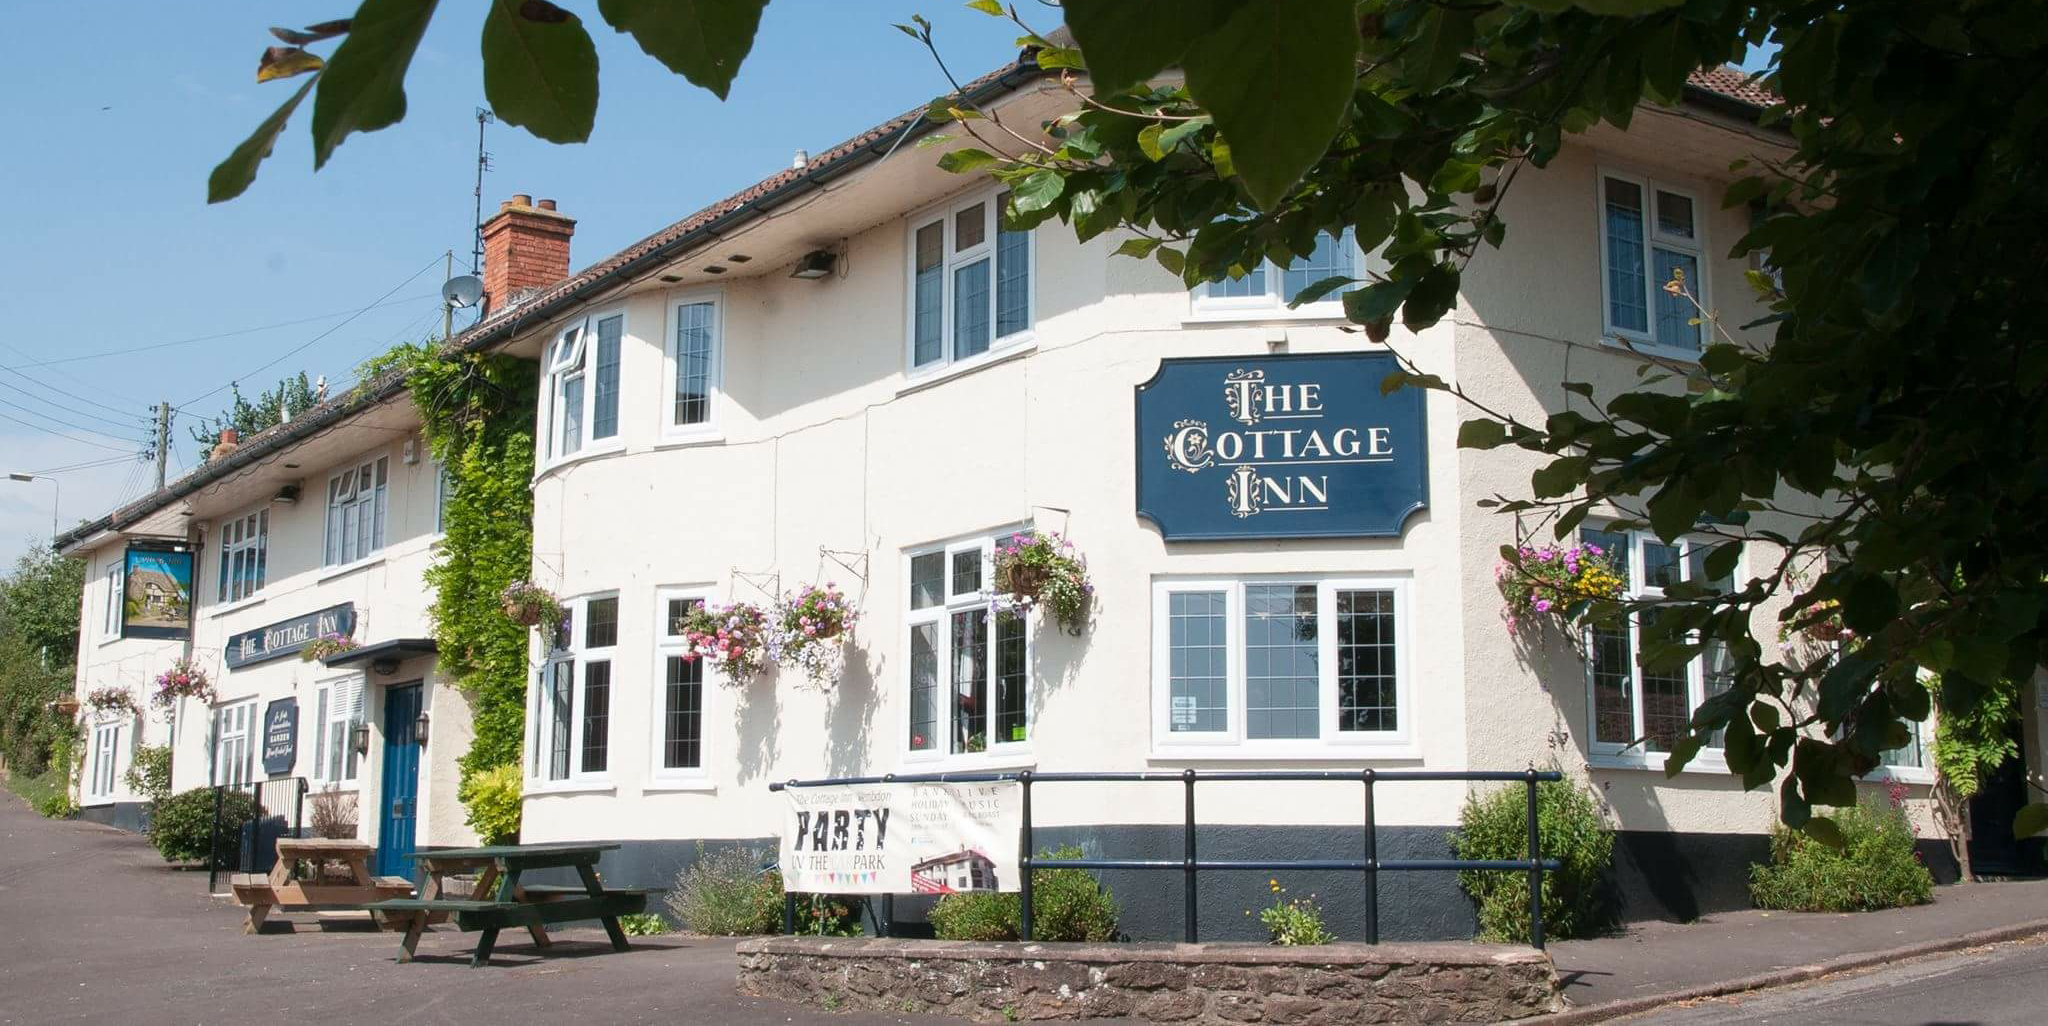 The Cottage Inn Wembdon